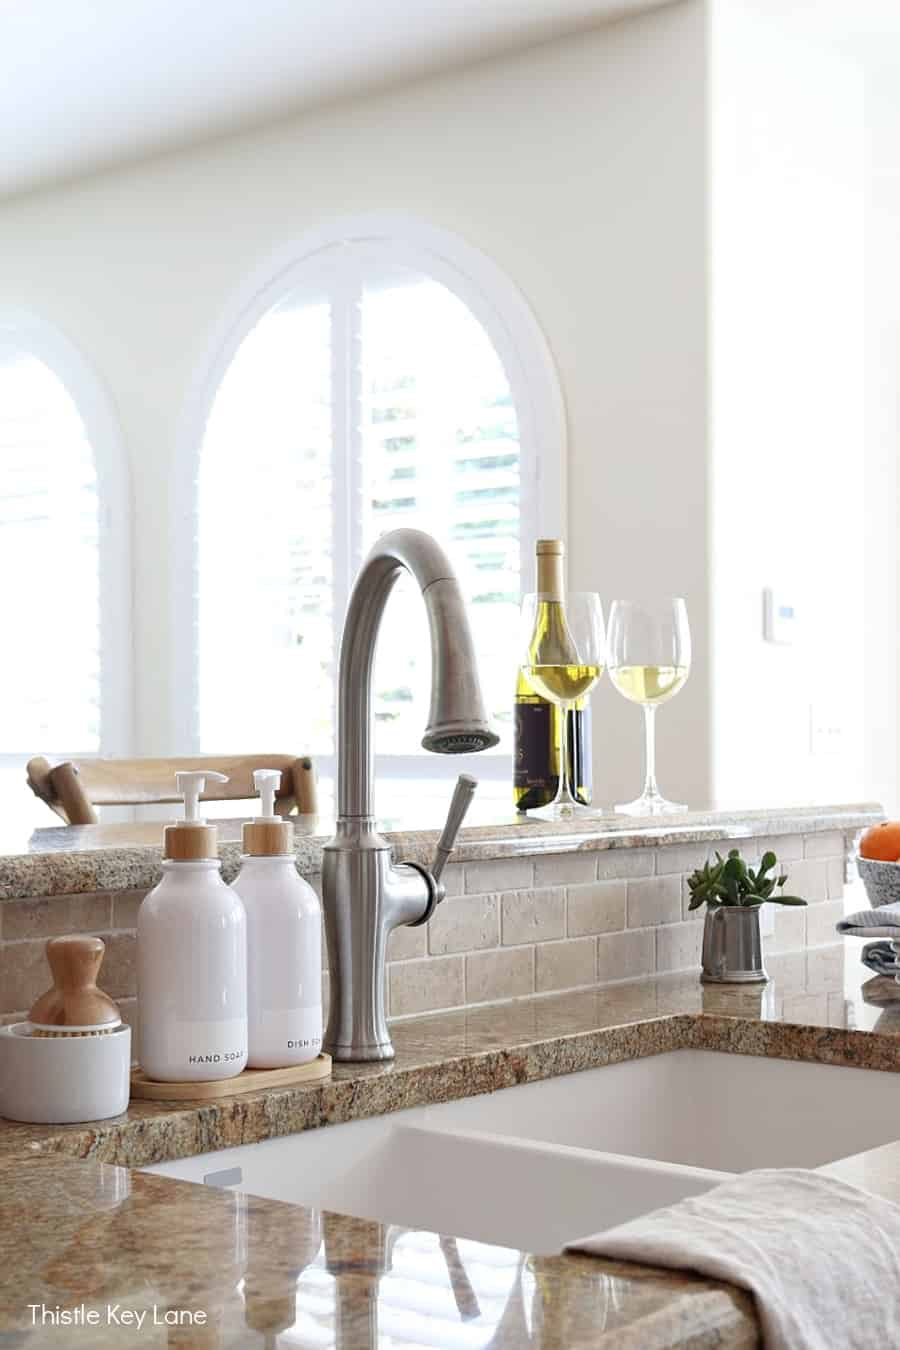 Kitchen sink, white soap bottles, big windows in background.